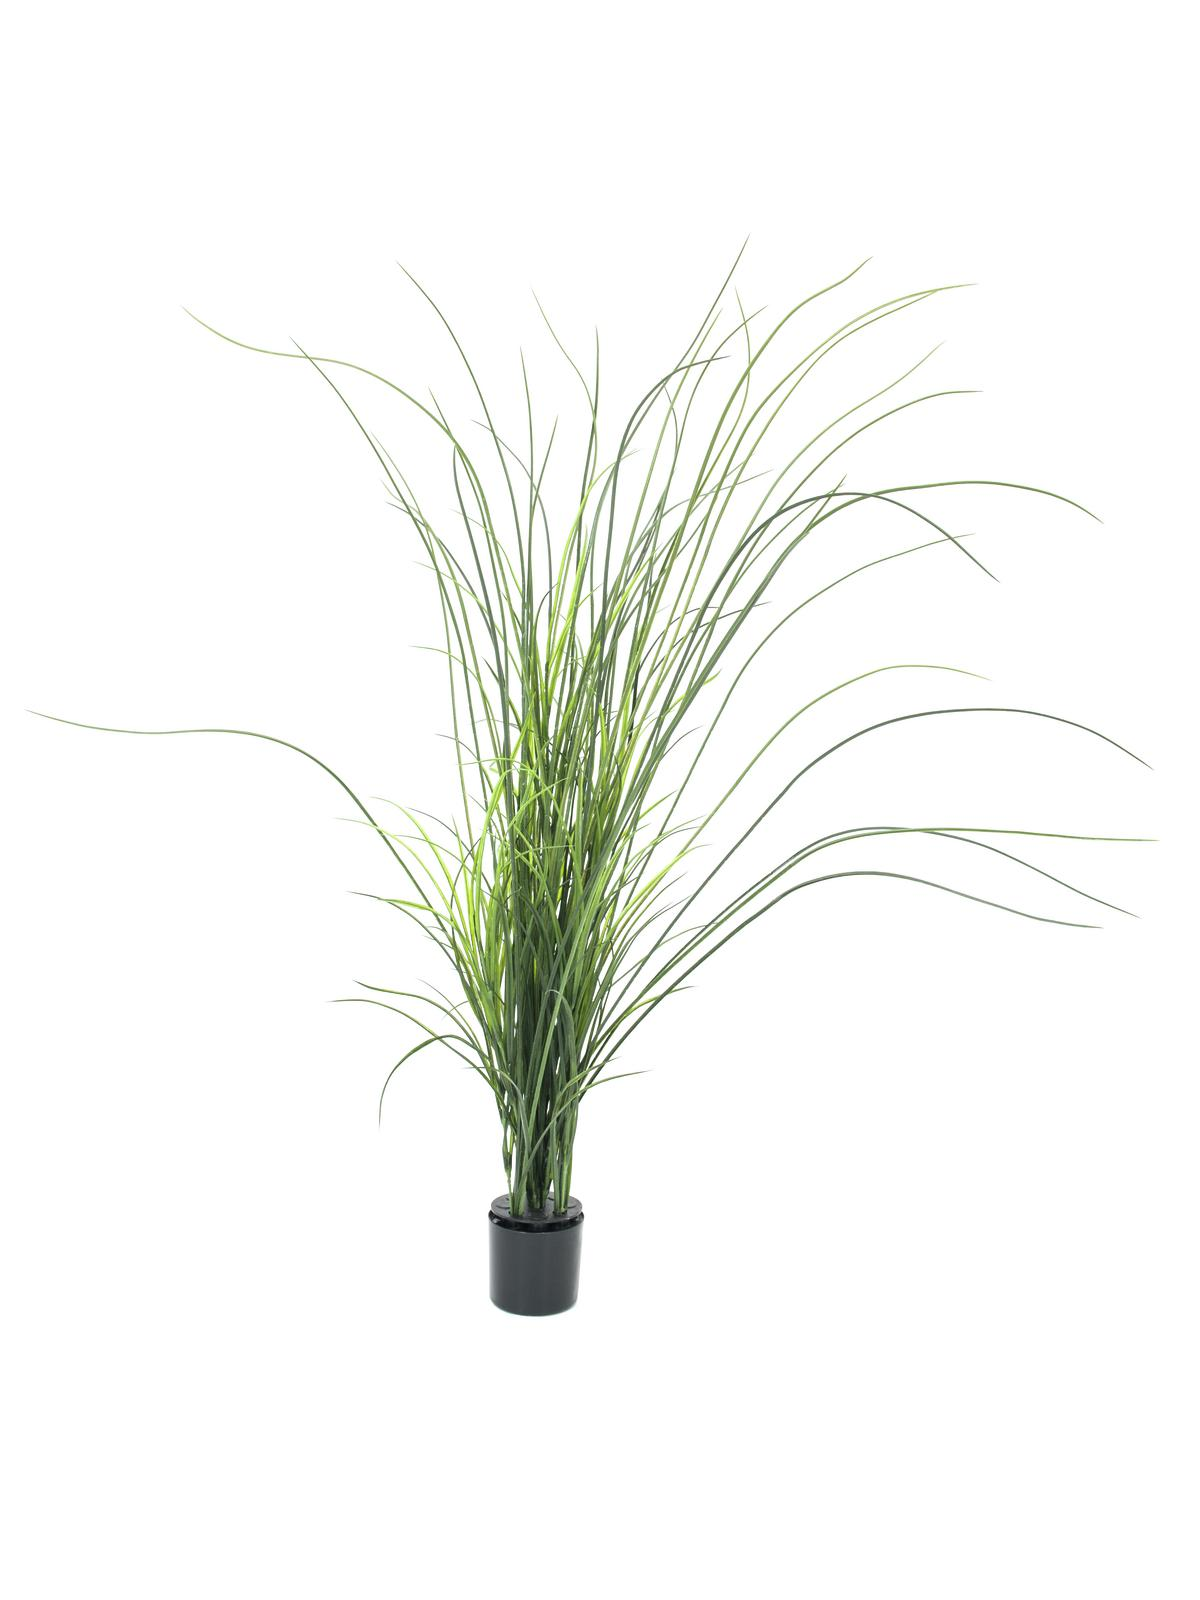 Pianta Artificiale In Plastica Erba reed Grass 145 Cm Europalms